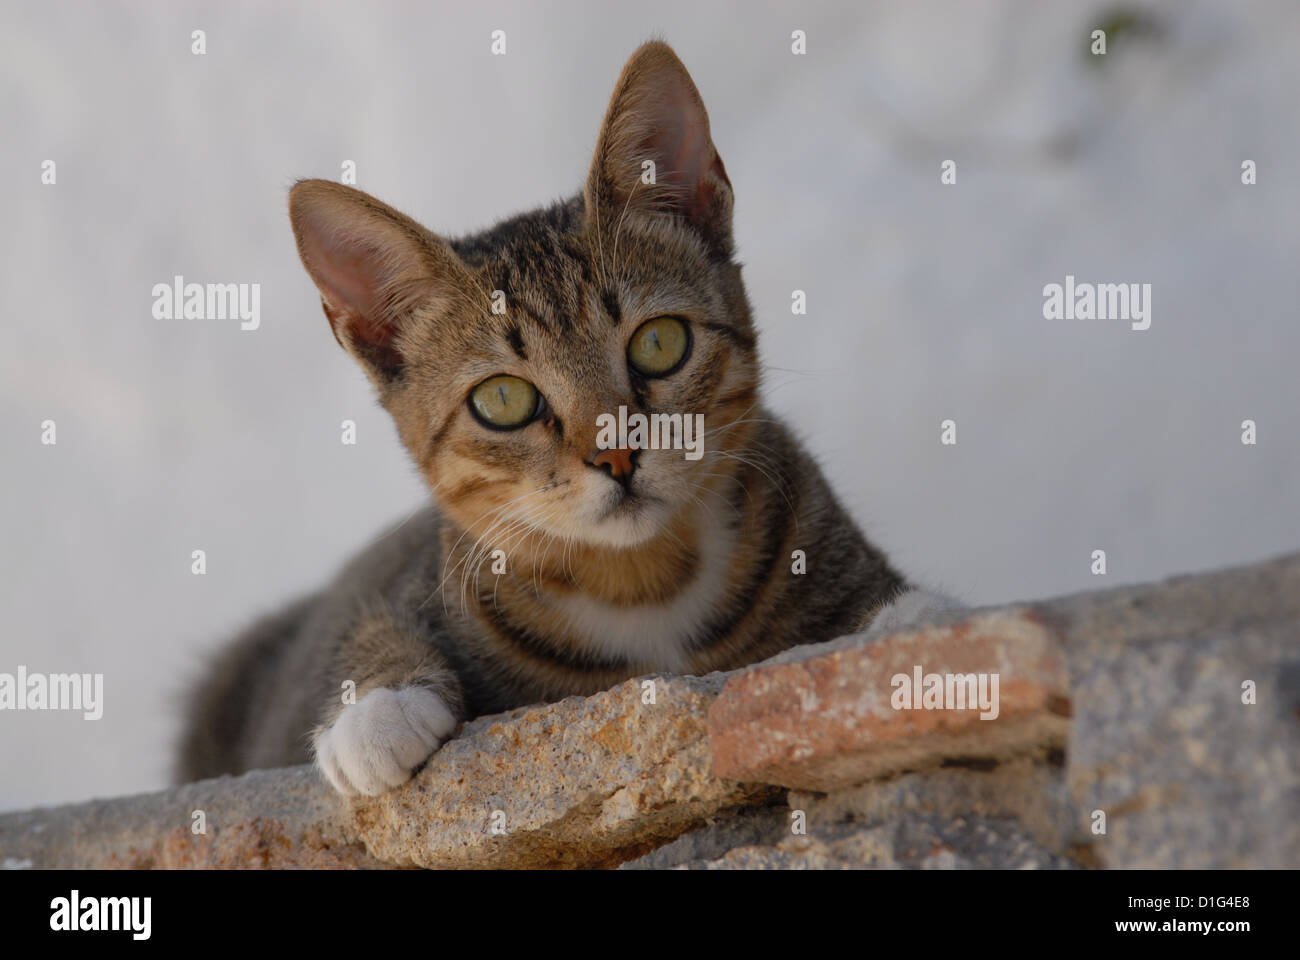 Tabby and White, peering down from a wall, Greece, Dodecanese Island, Non-pedigree Shorthair, felis silvestris forma - Stock Image